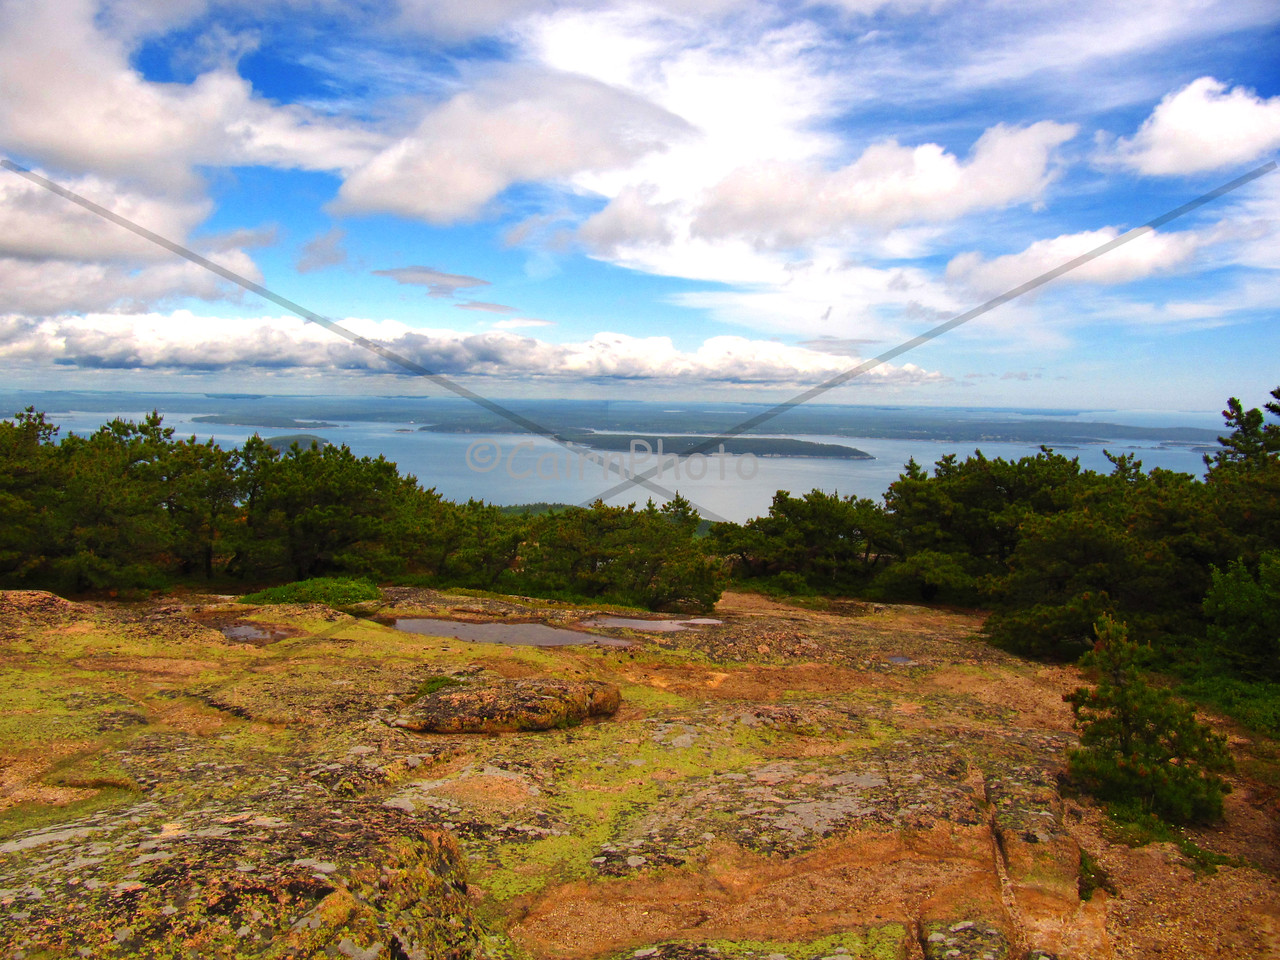 Bar Harbor from Dorr Mountain, Acadia National Park, Maine